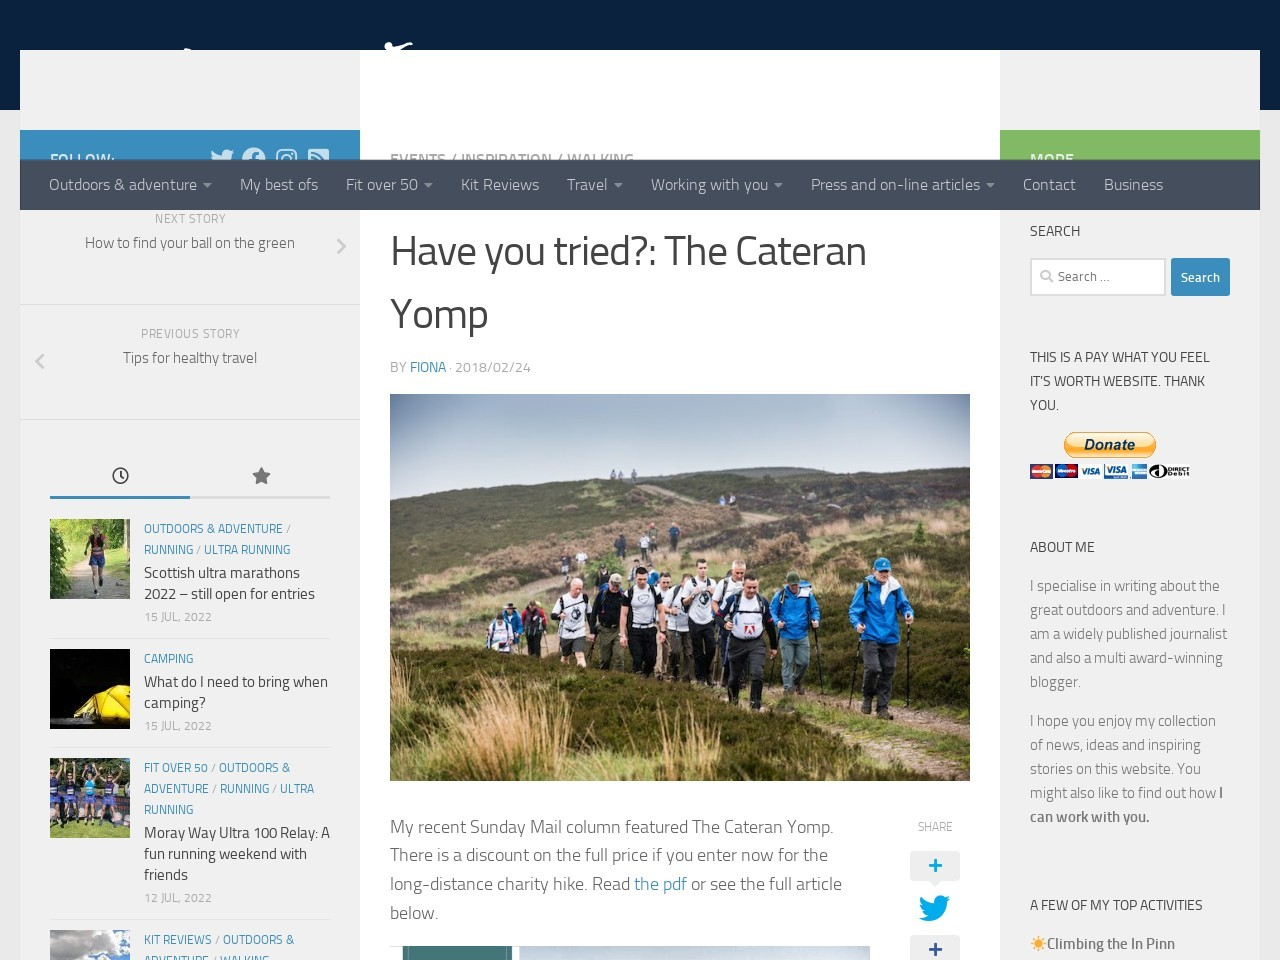 Have you tried?: The Cateran Yomp